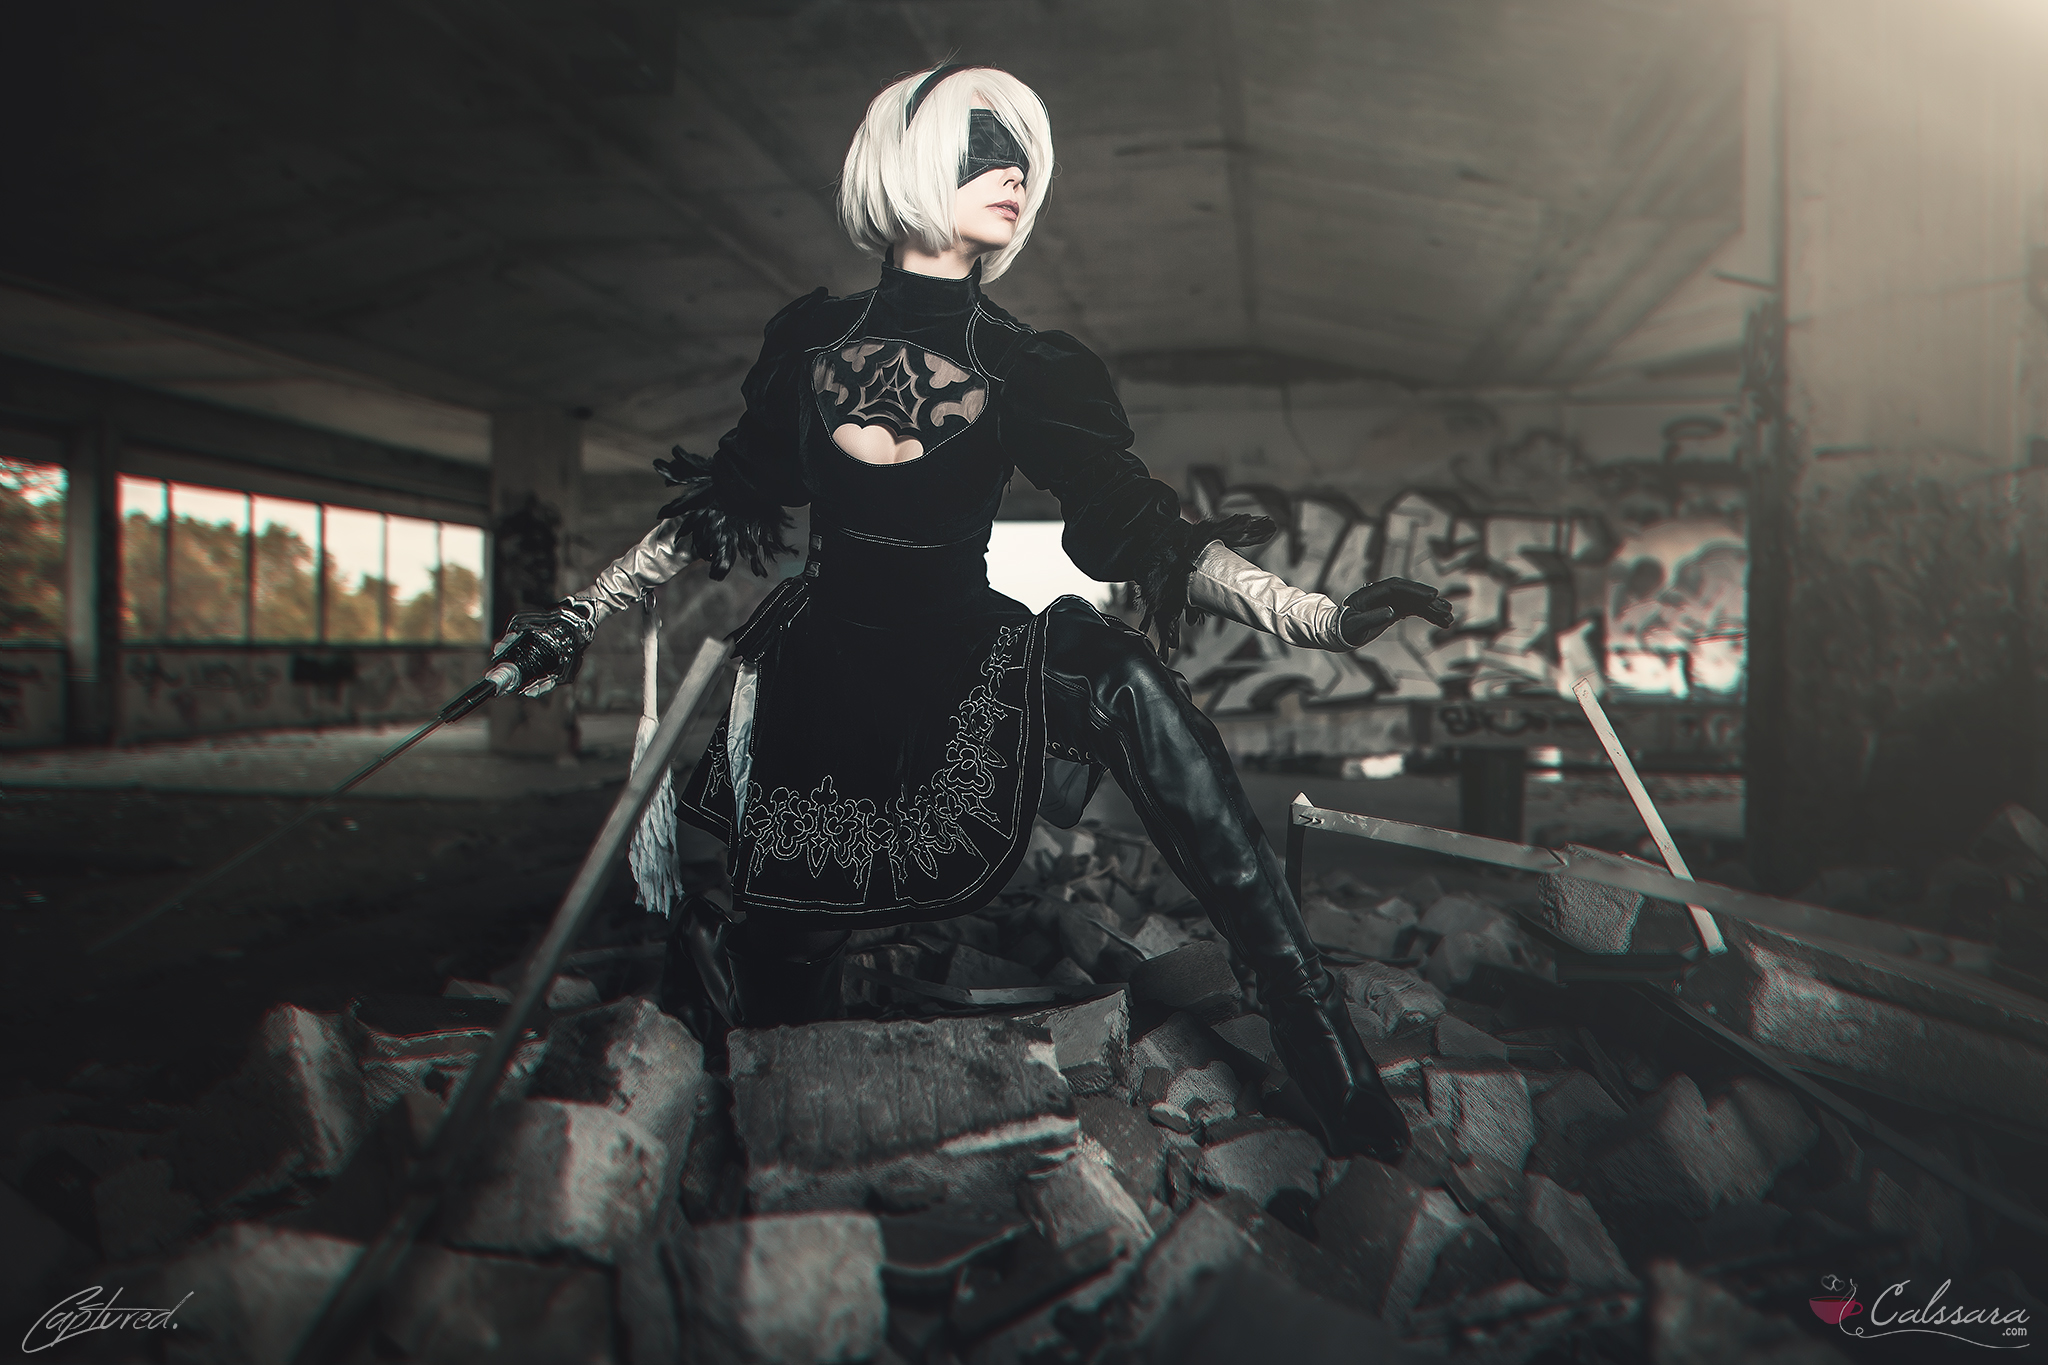 Nier Automata Cosplay Artwork Hd Girls 4k Wallpapers Images